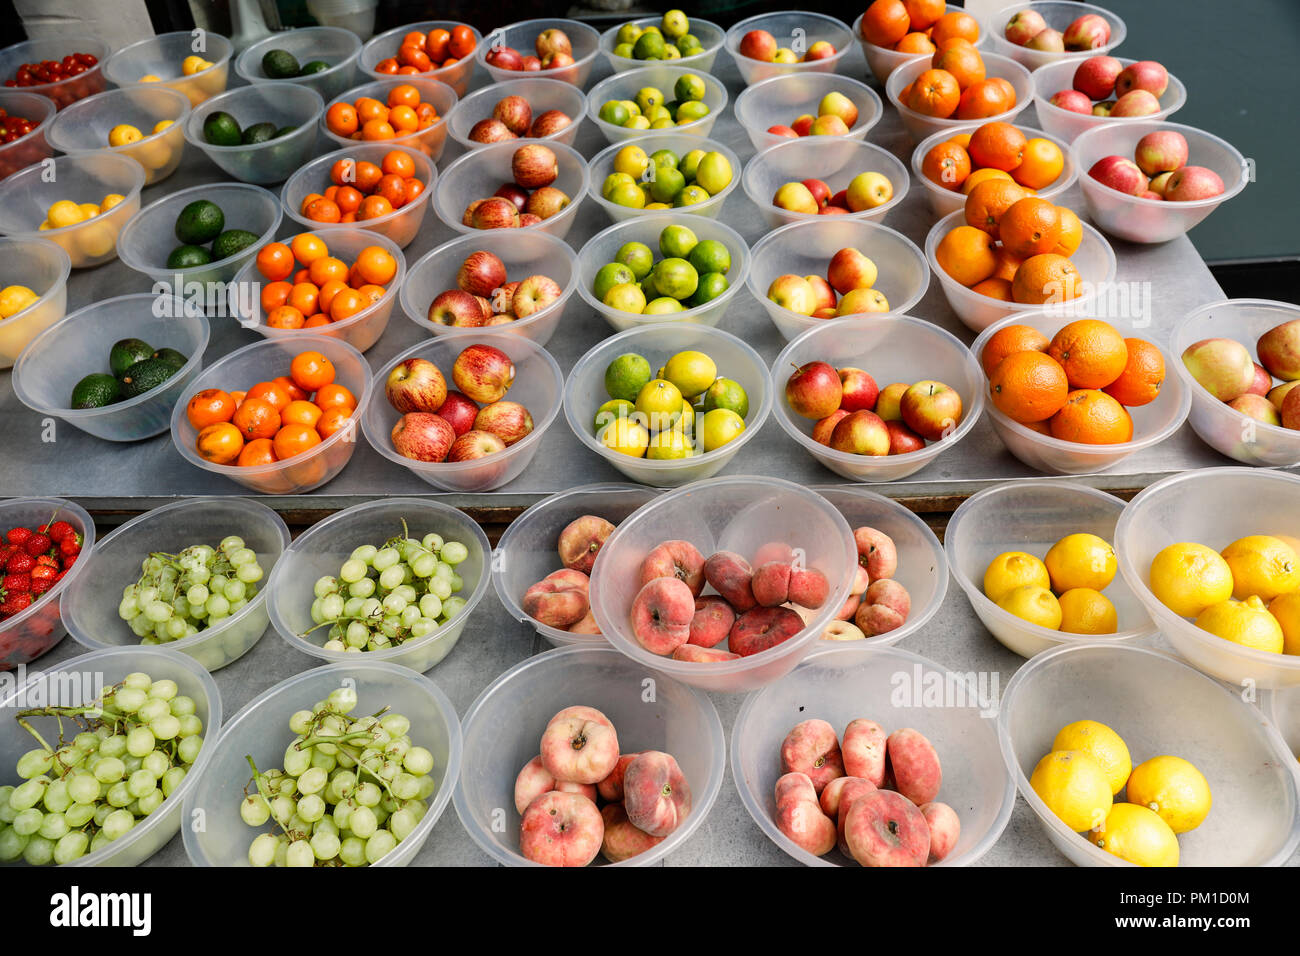 Close up of bowls of fruit displayed outside a greengrocers for sale. - Stock Image